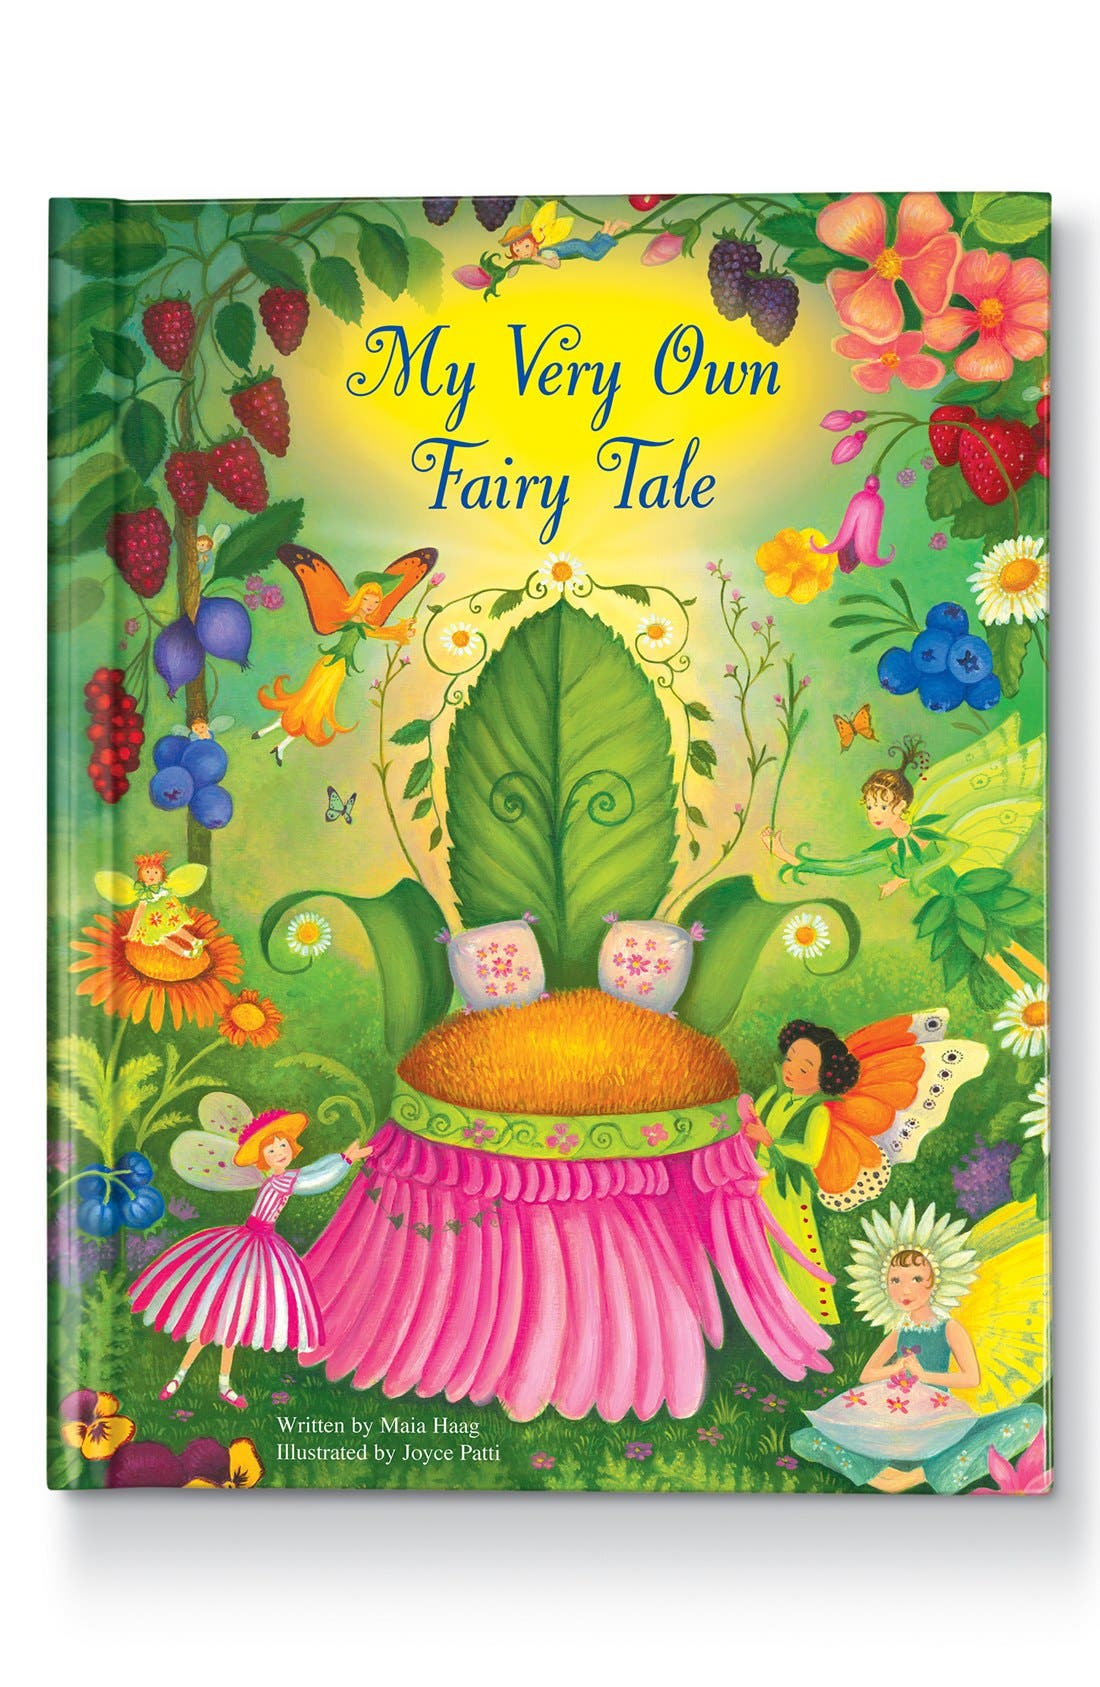 I SEE ME! 'My Very Own Fairy Tale'